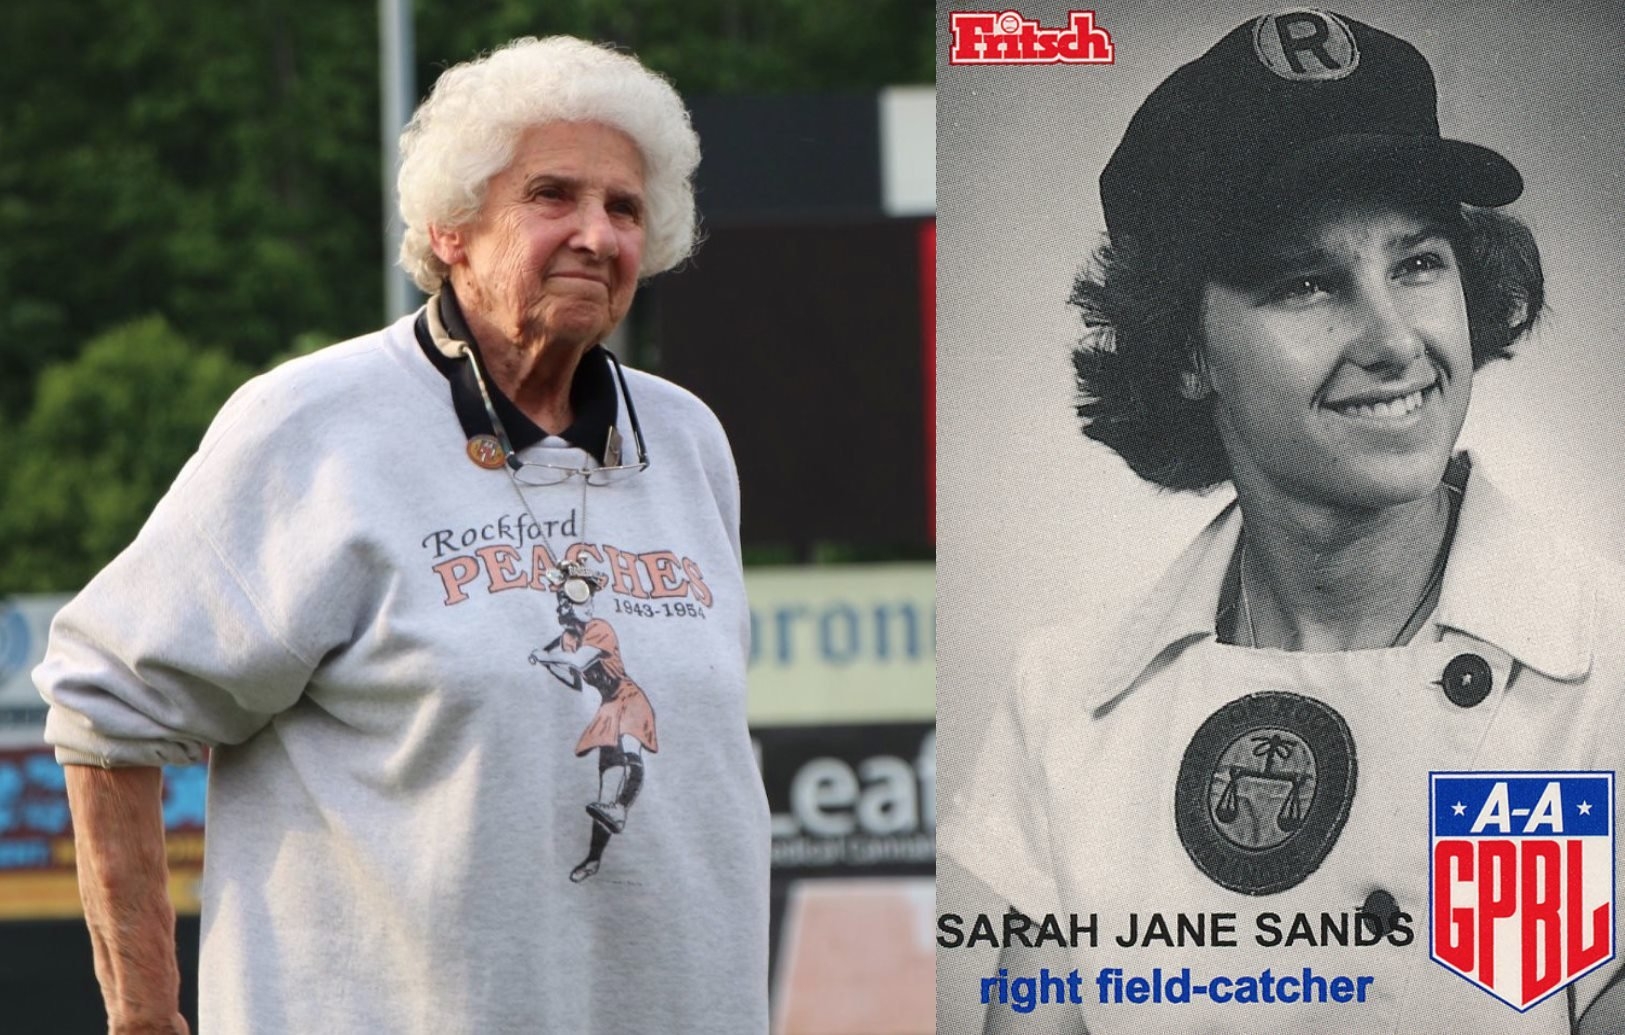 """Happy 84th birthday to Sarah Jane """"Salty"""" Ferguson!! Salty was a right fielder/catcher for the #RockfordPeaches from 1953-'54. When Salty was in high school she would tell everybody that she was going to be a pro baseball player - eventually that dream would come true! #AAGPBL https://t.co/Isj8cK08rr"""